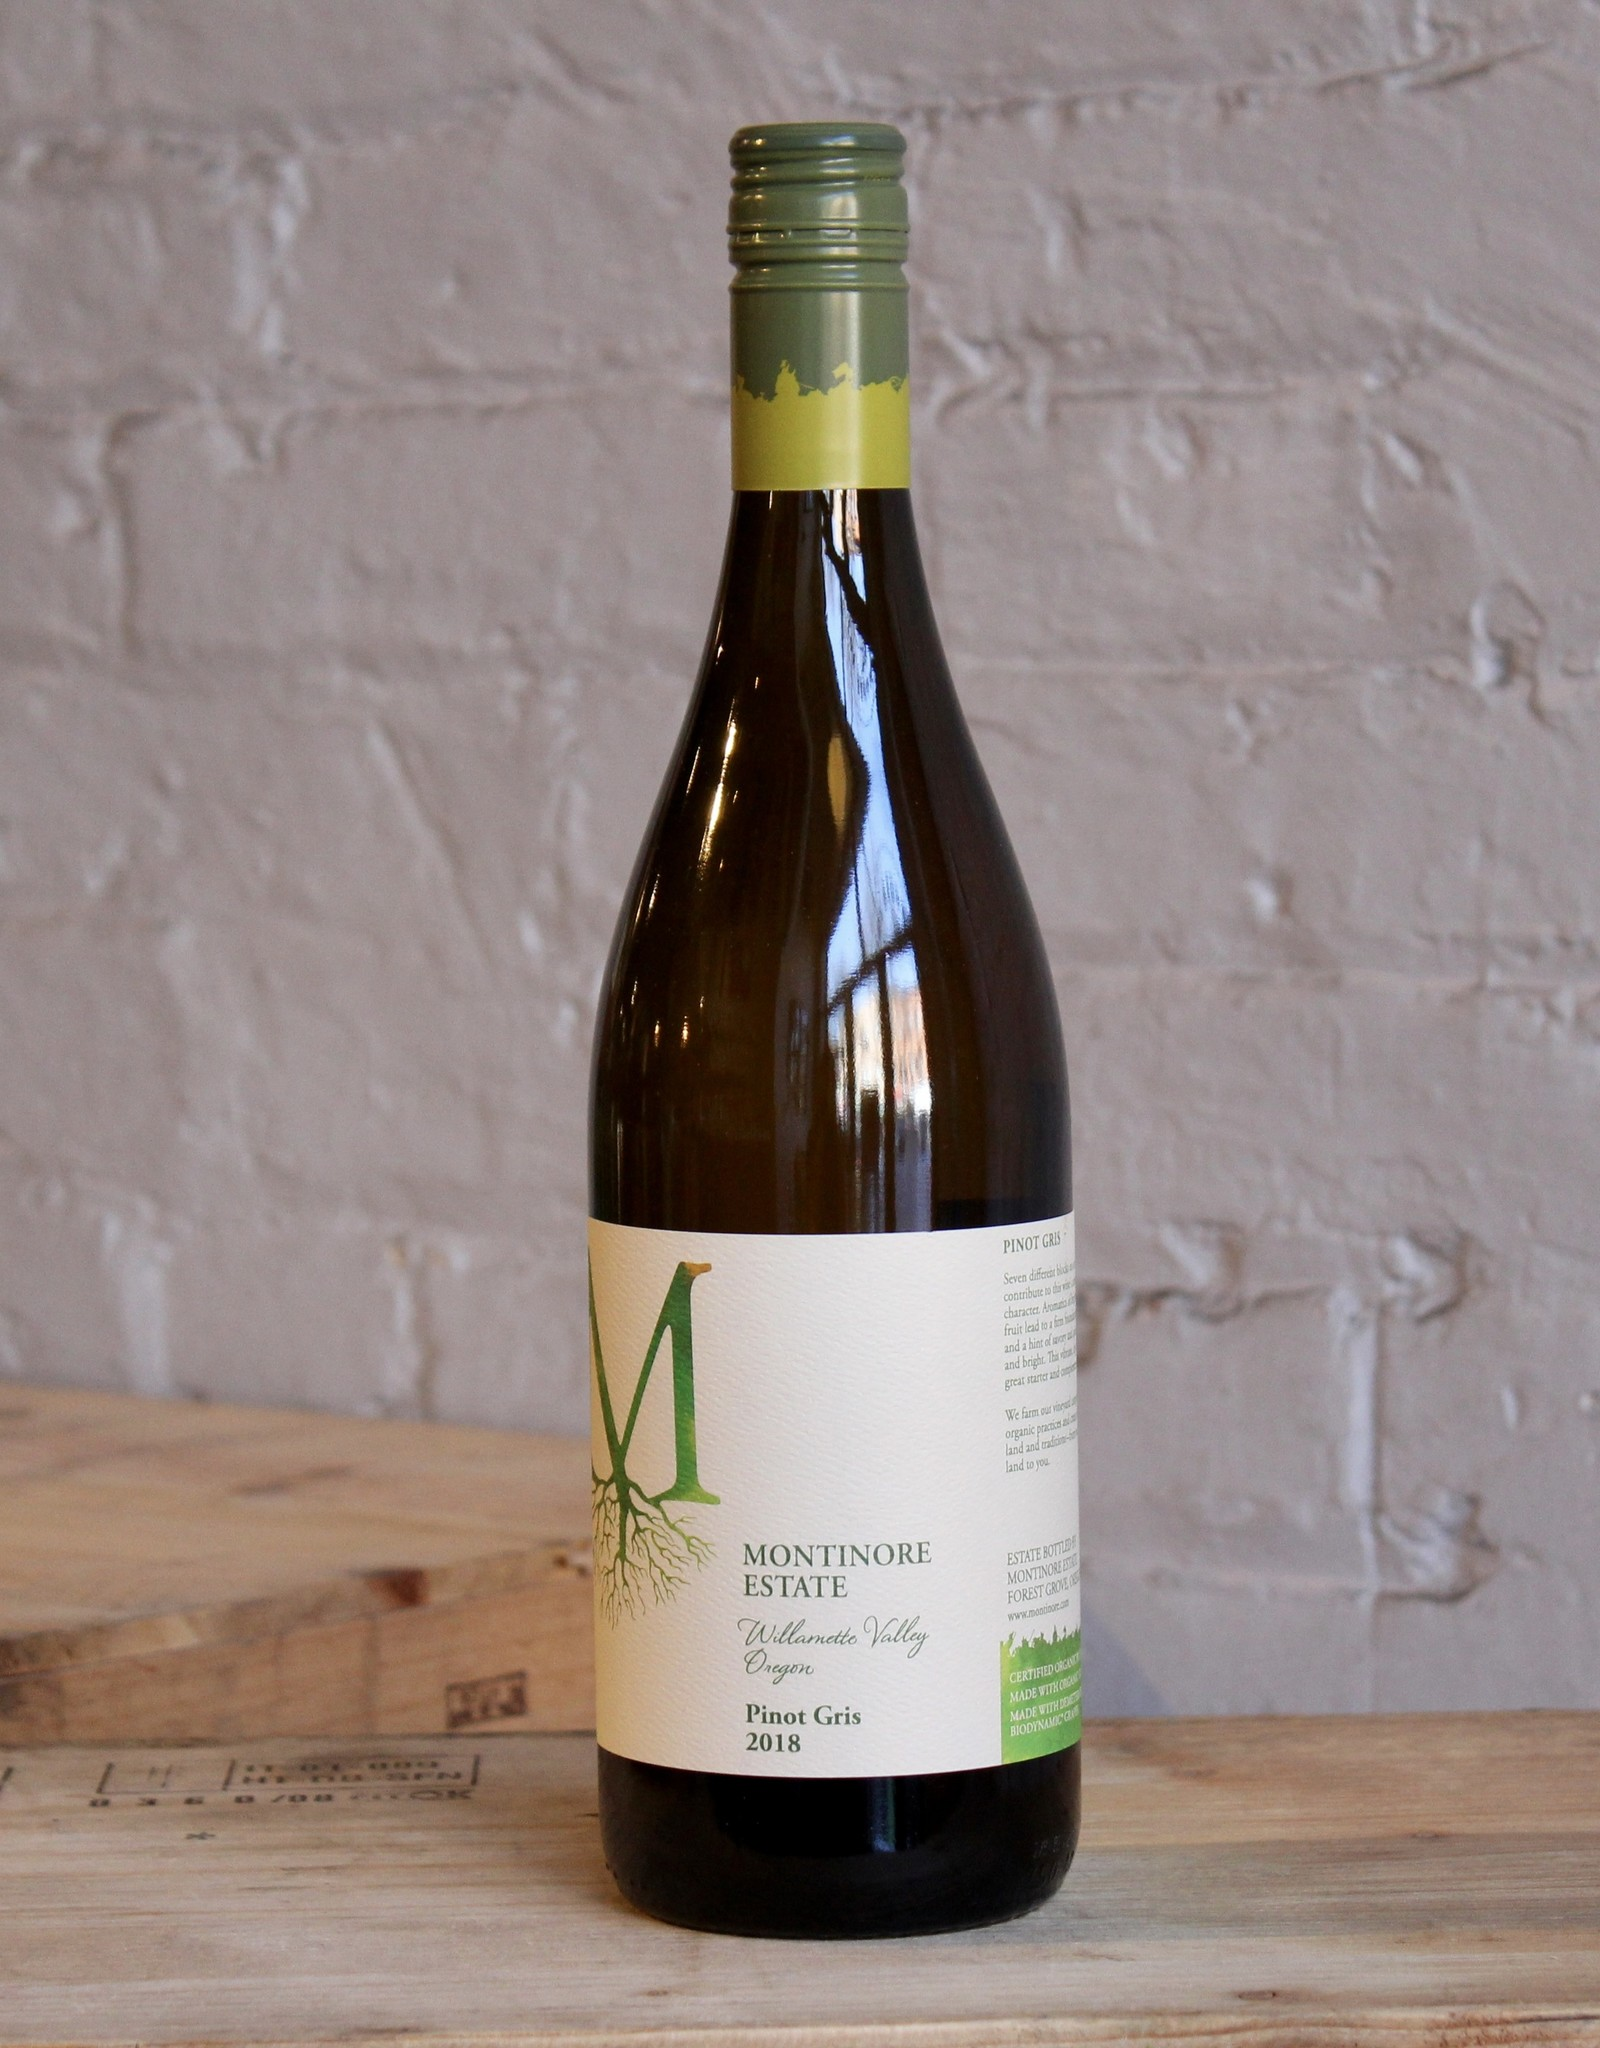 Wine 2018 Montinore Pinot Gris - Willamette Valley, Oregon (750ml)